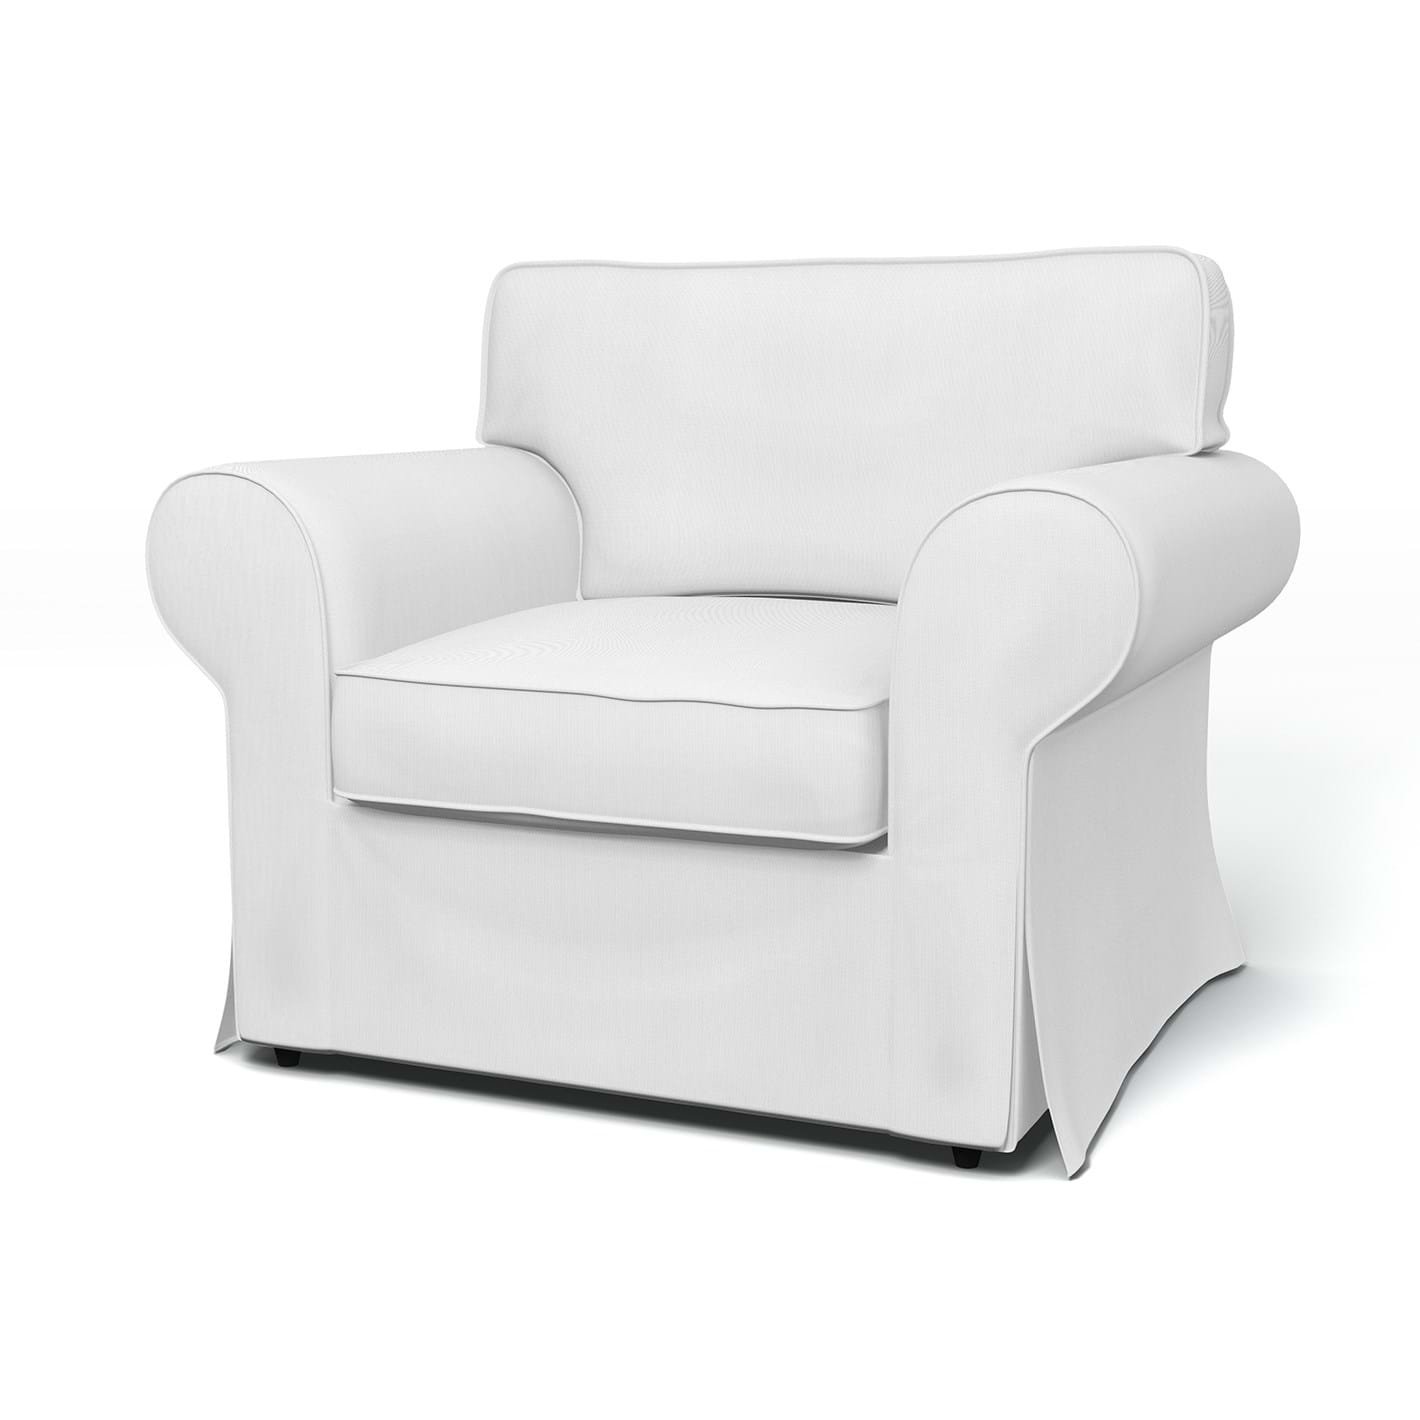 Excellent Replacement Ikea Ektorp Armchair Covers Slipcovers Bemz Bemz Pabps2019 Chair Design Images Pabps2019Com